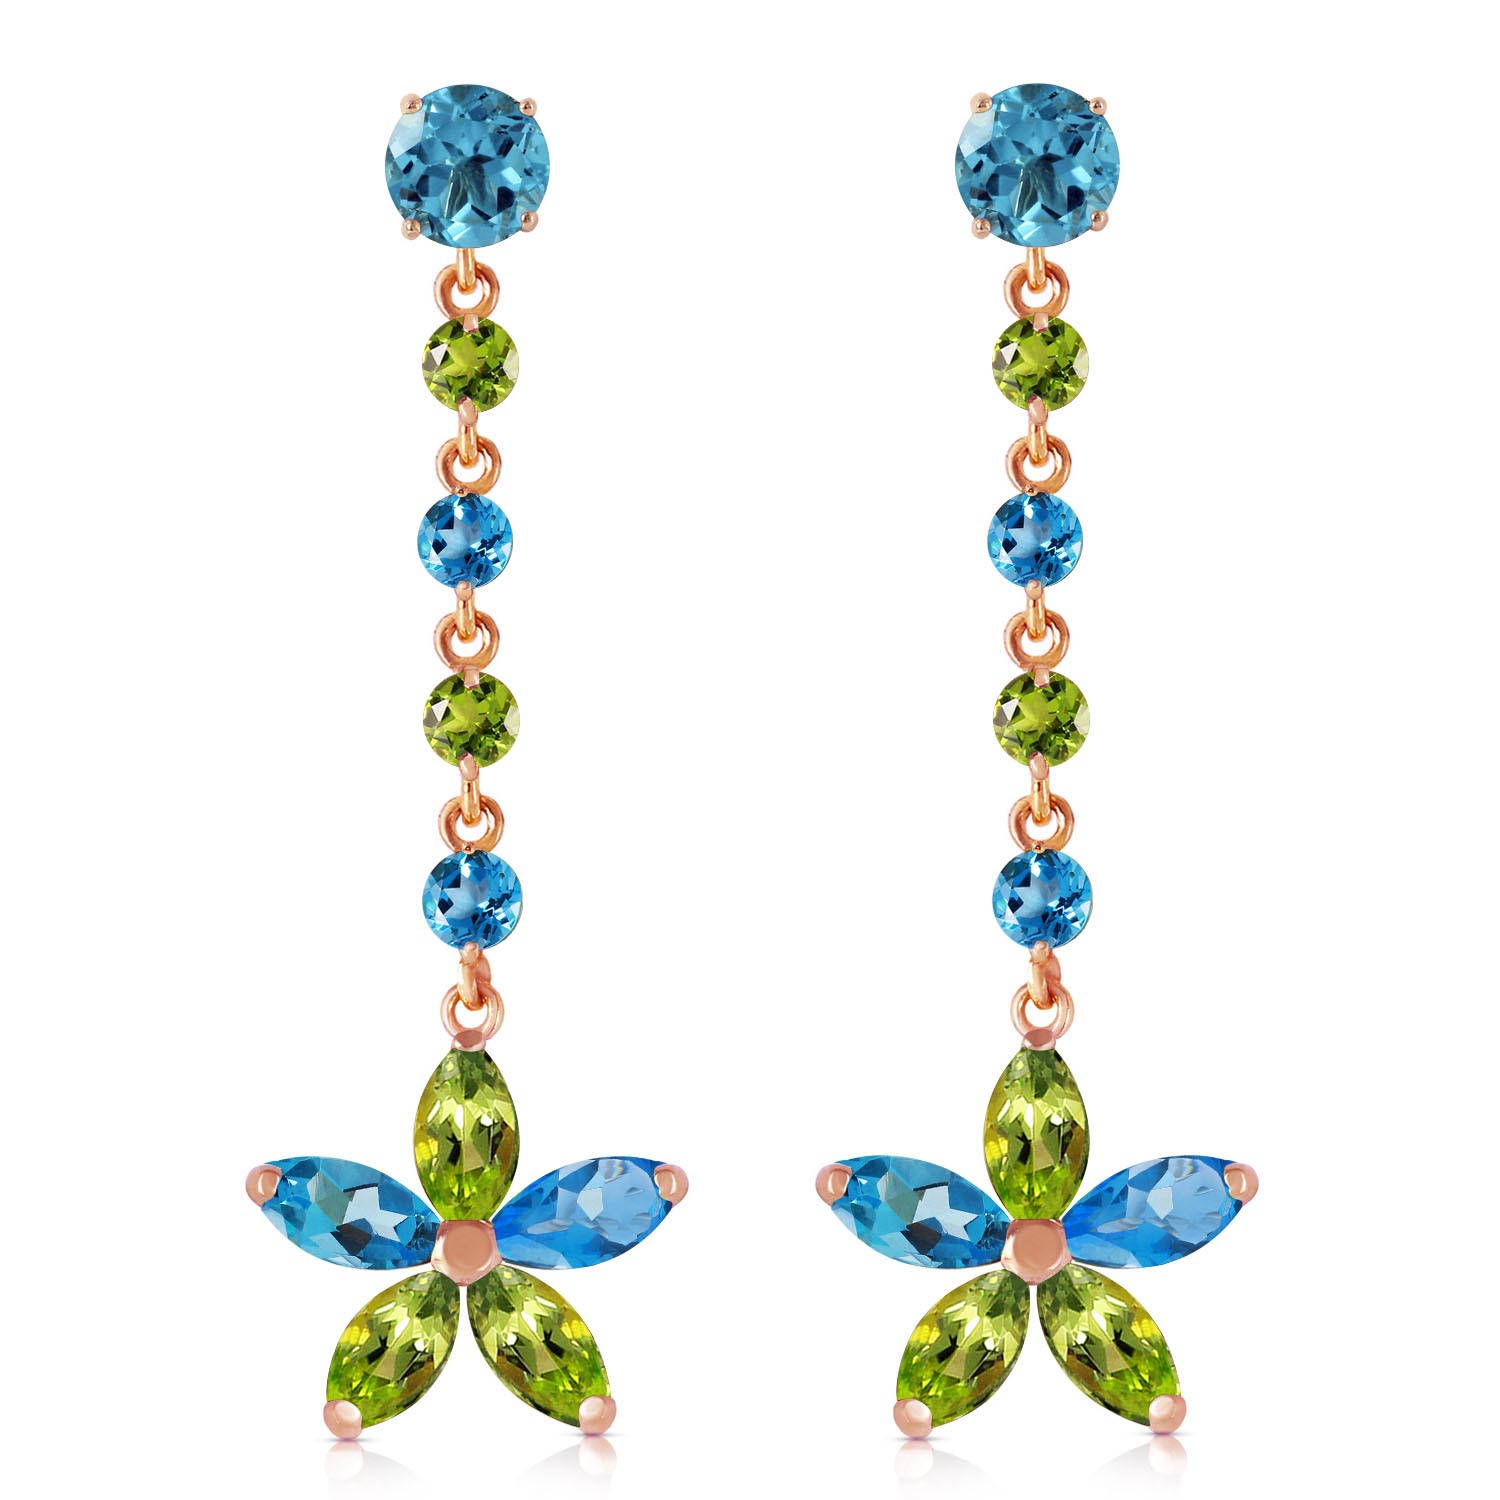 Blue Topaz and Peridot Daisy Chain Drop Earrings 4.8ctw in 9ct Rose Gold